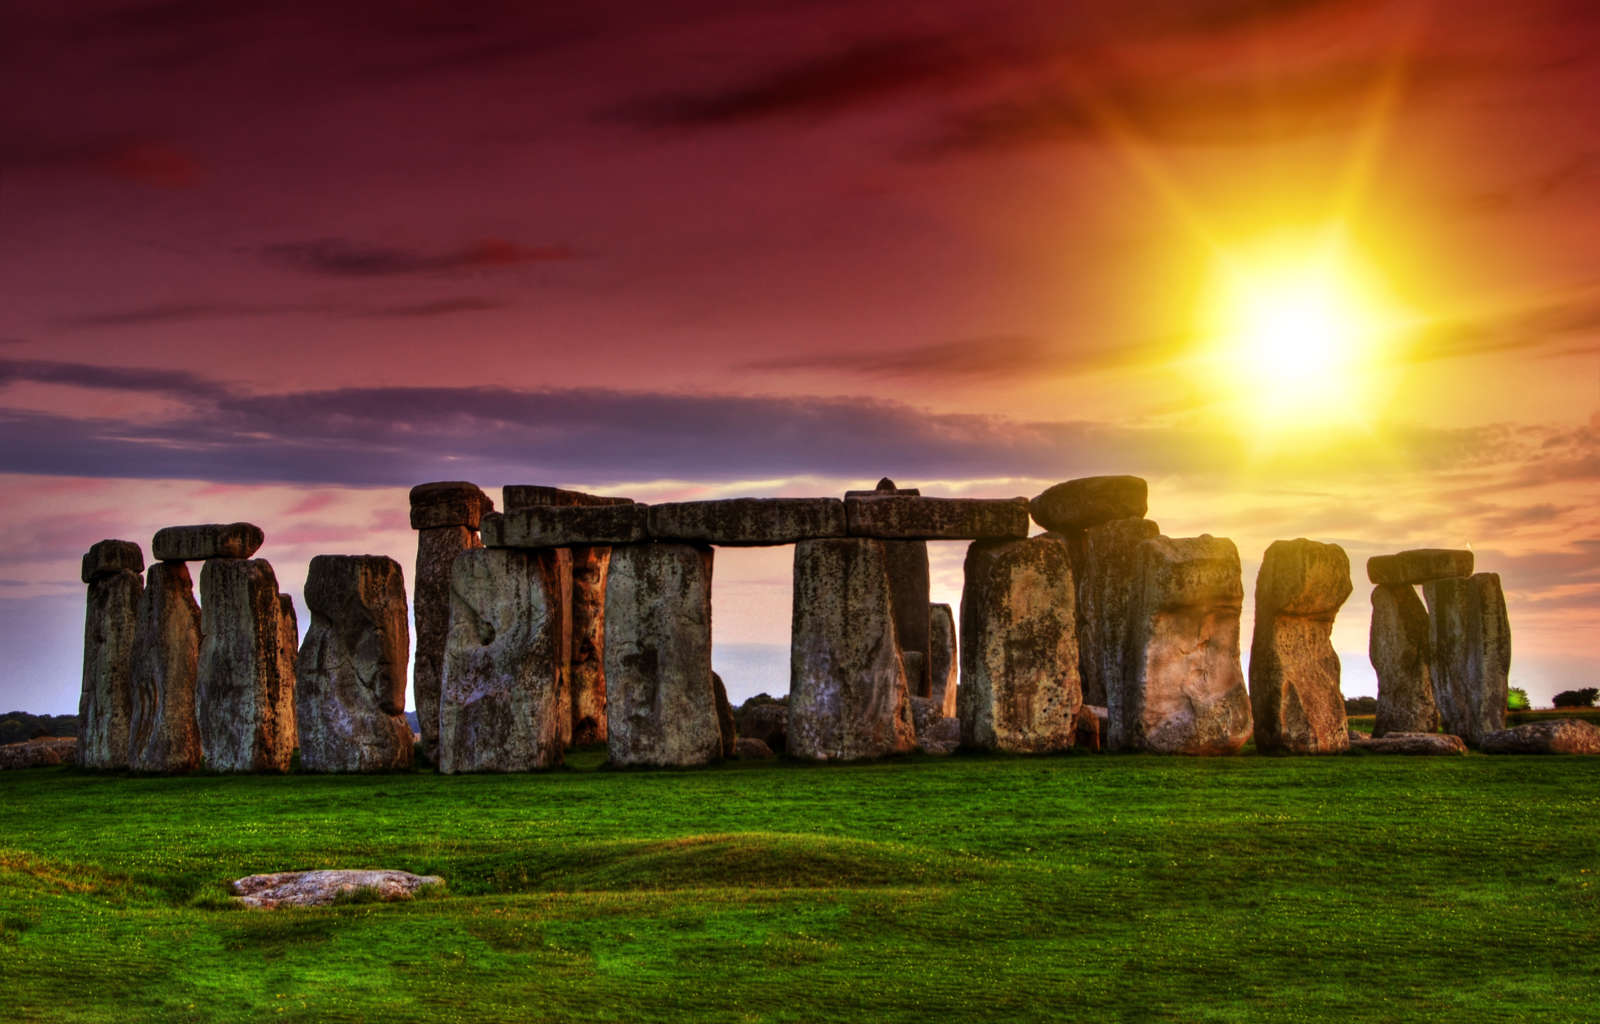 What Is the Winter Solstice, and Why Do People Celebrate It?